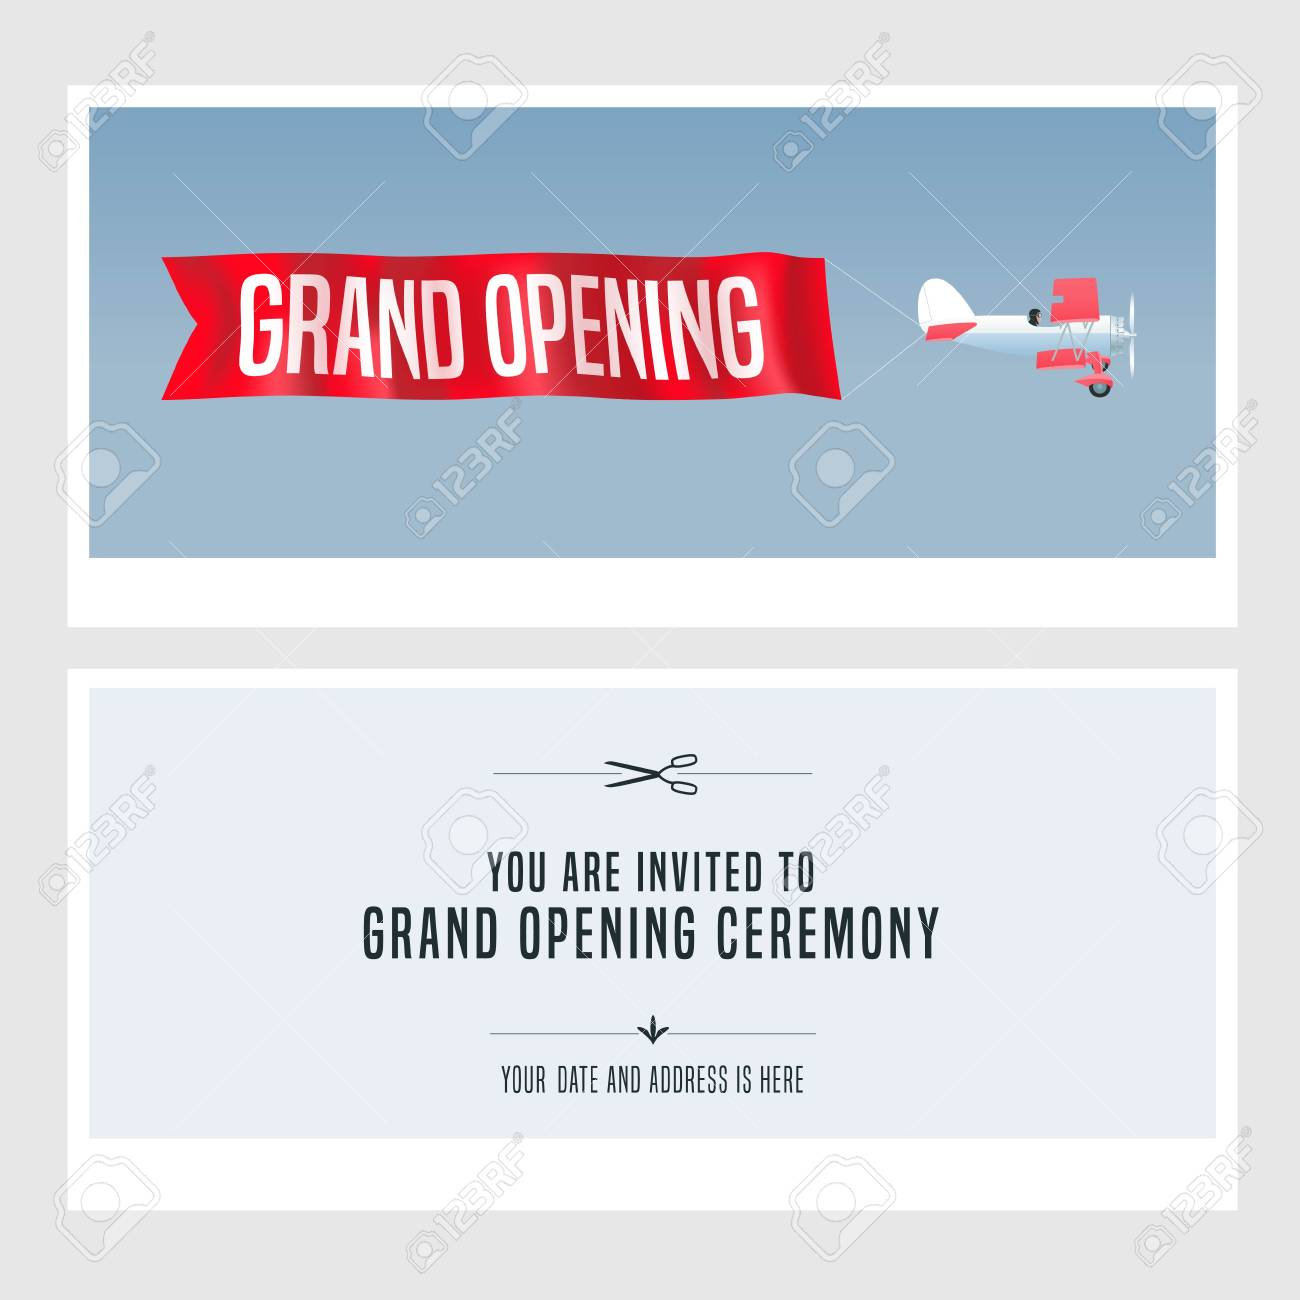 Vector   Vector Retro Biplane Design Element For Invitation Card To Grand  Opening Ceremony. Store Opening Soon Invite